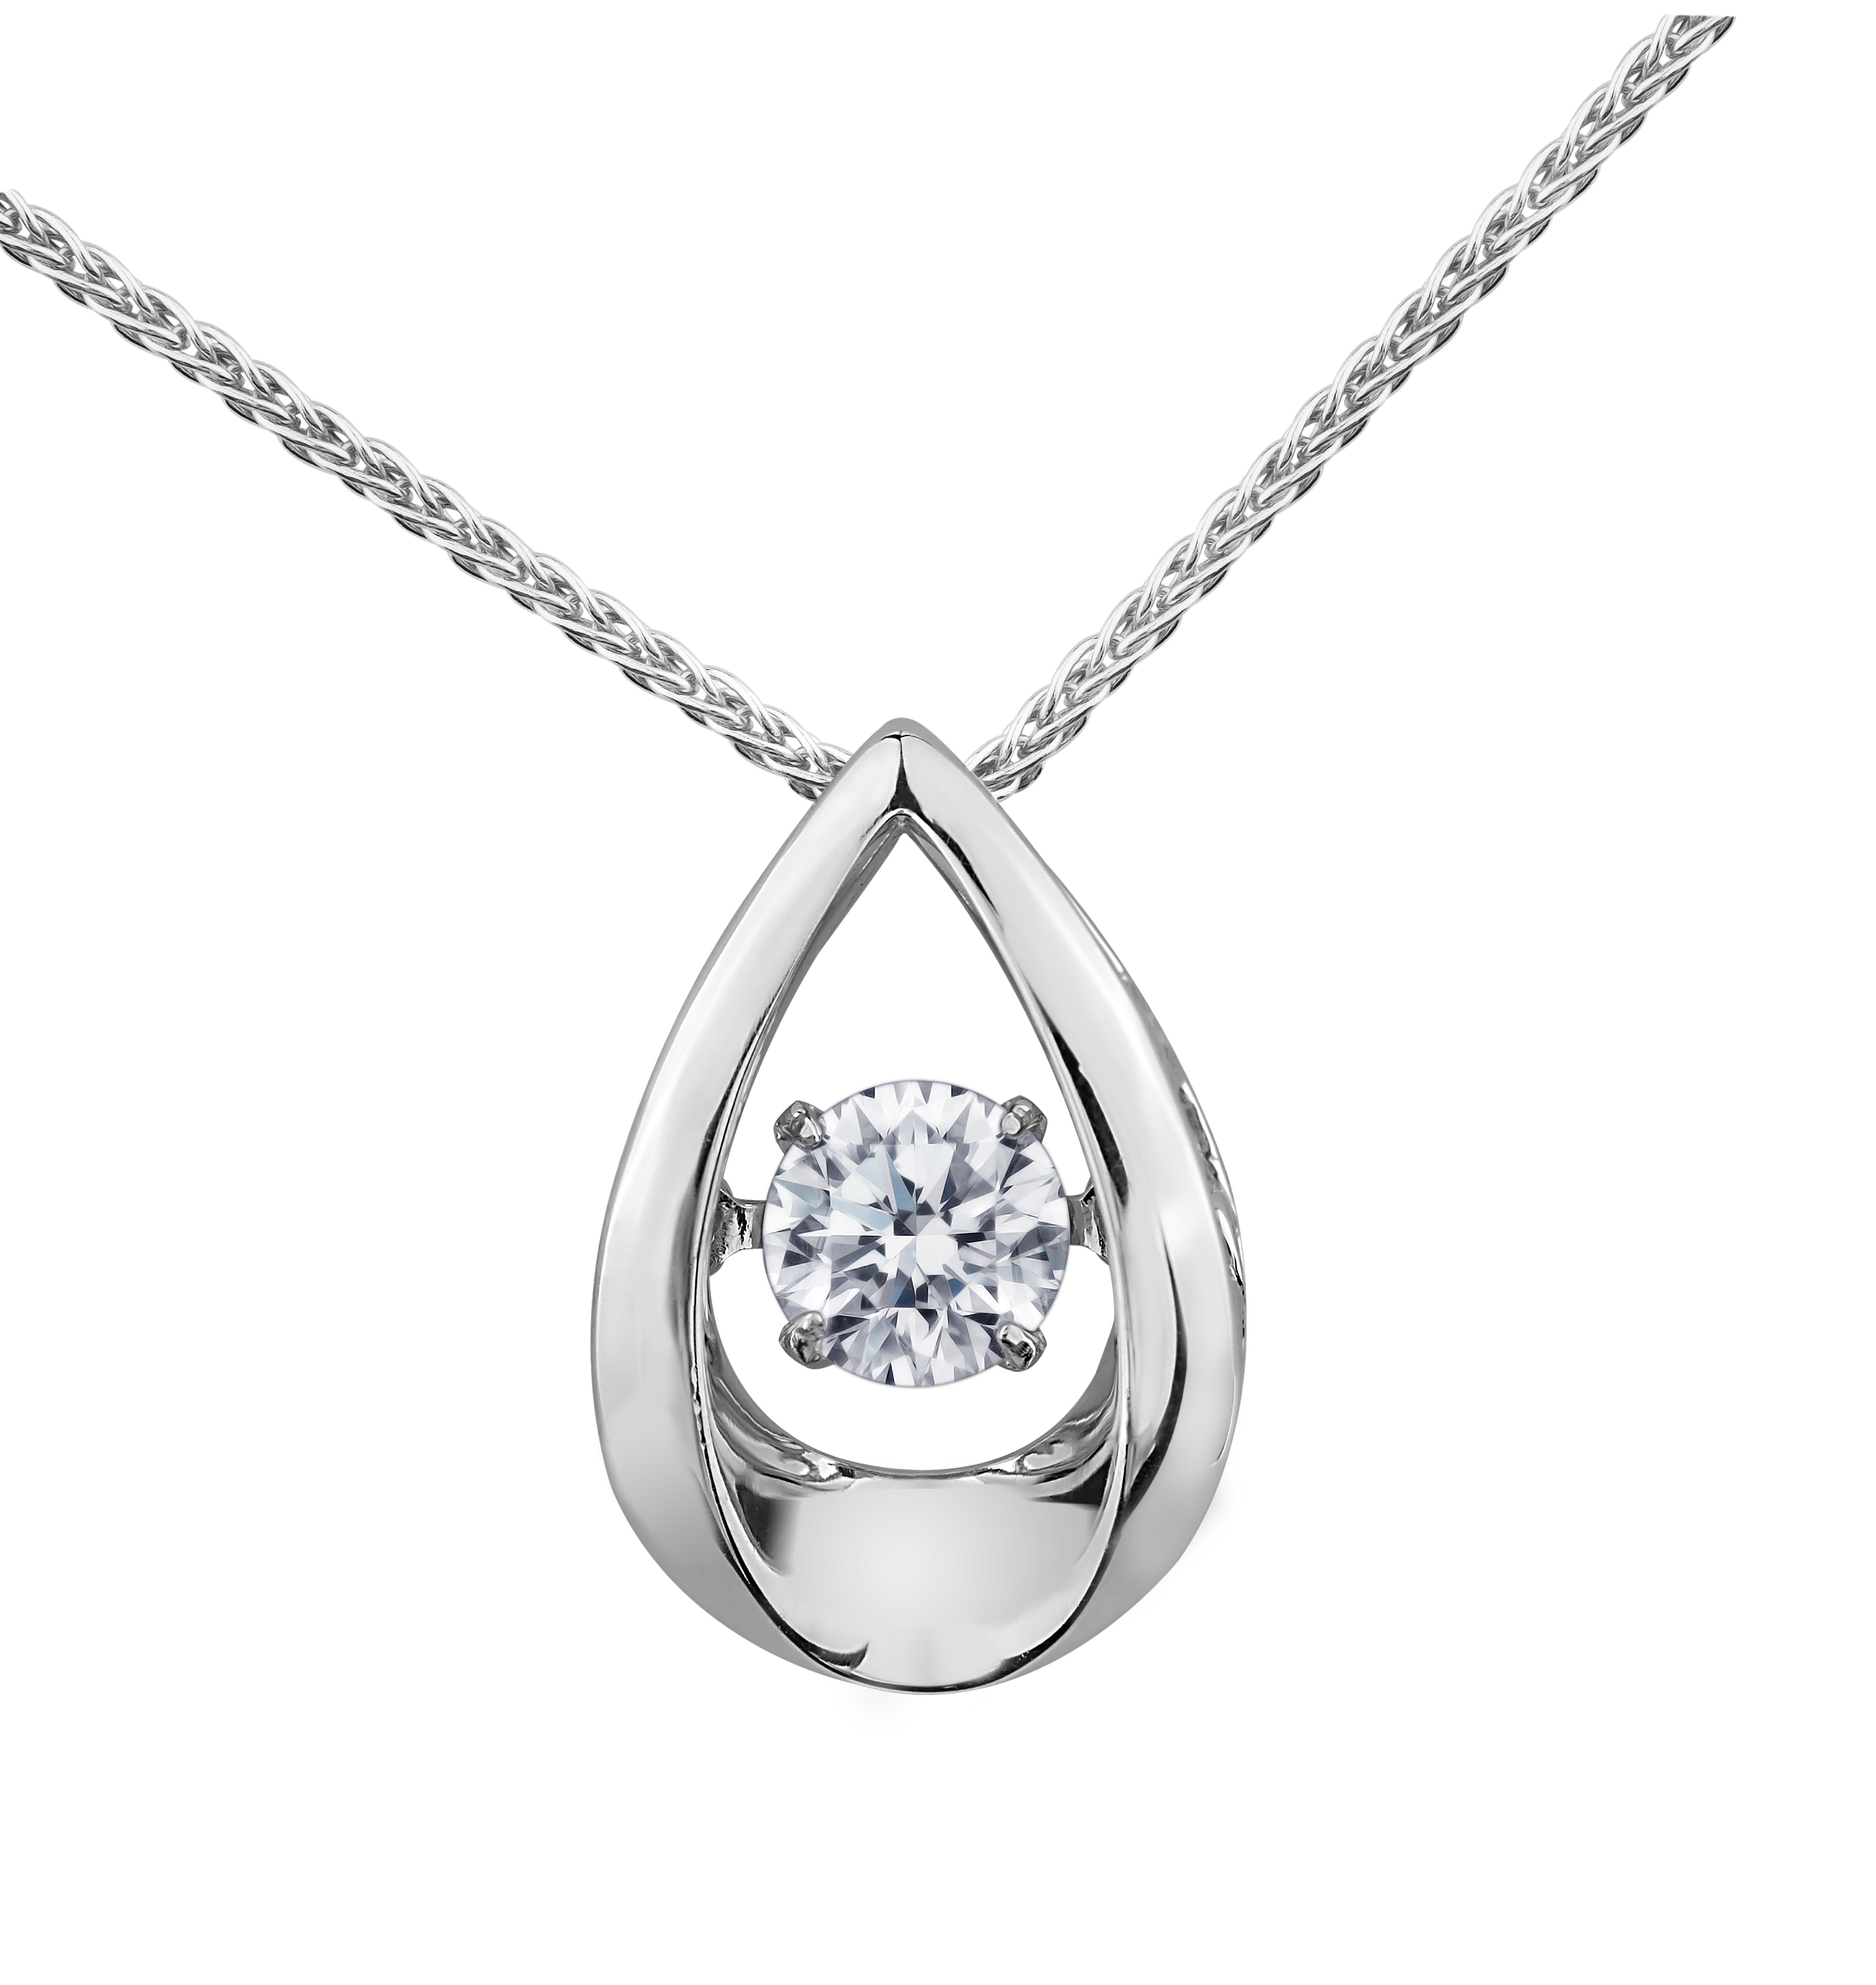 Pendentif -  Or blanc 10K & Diamants Canadien totalisant 0.05 Carat